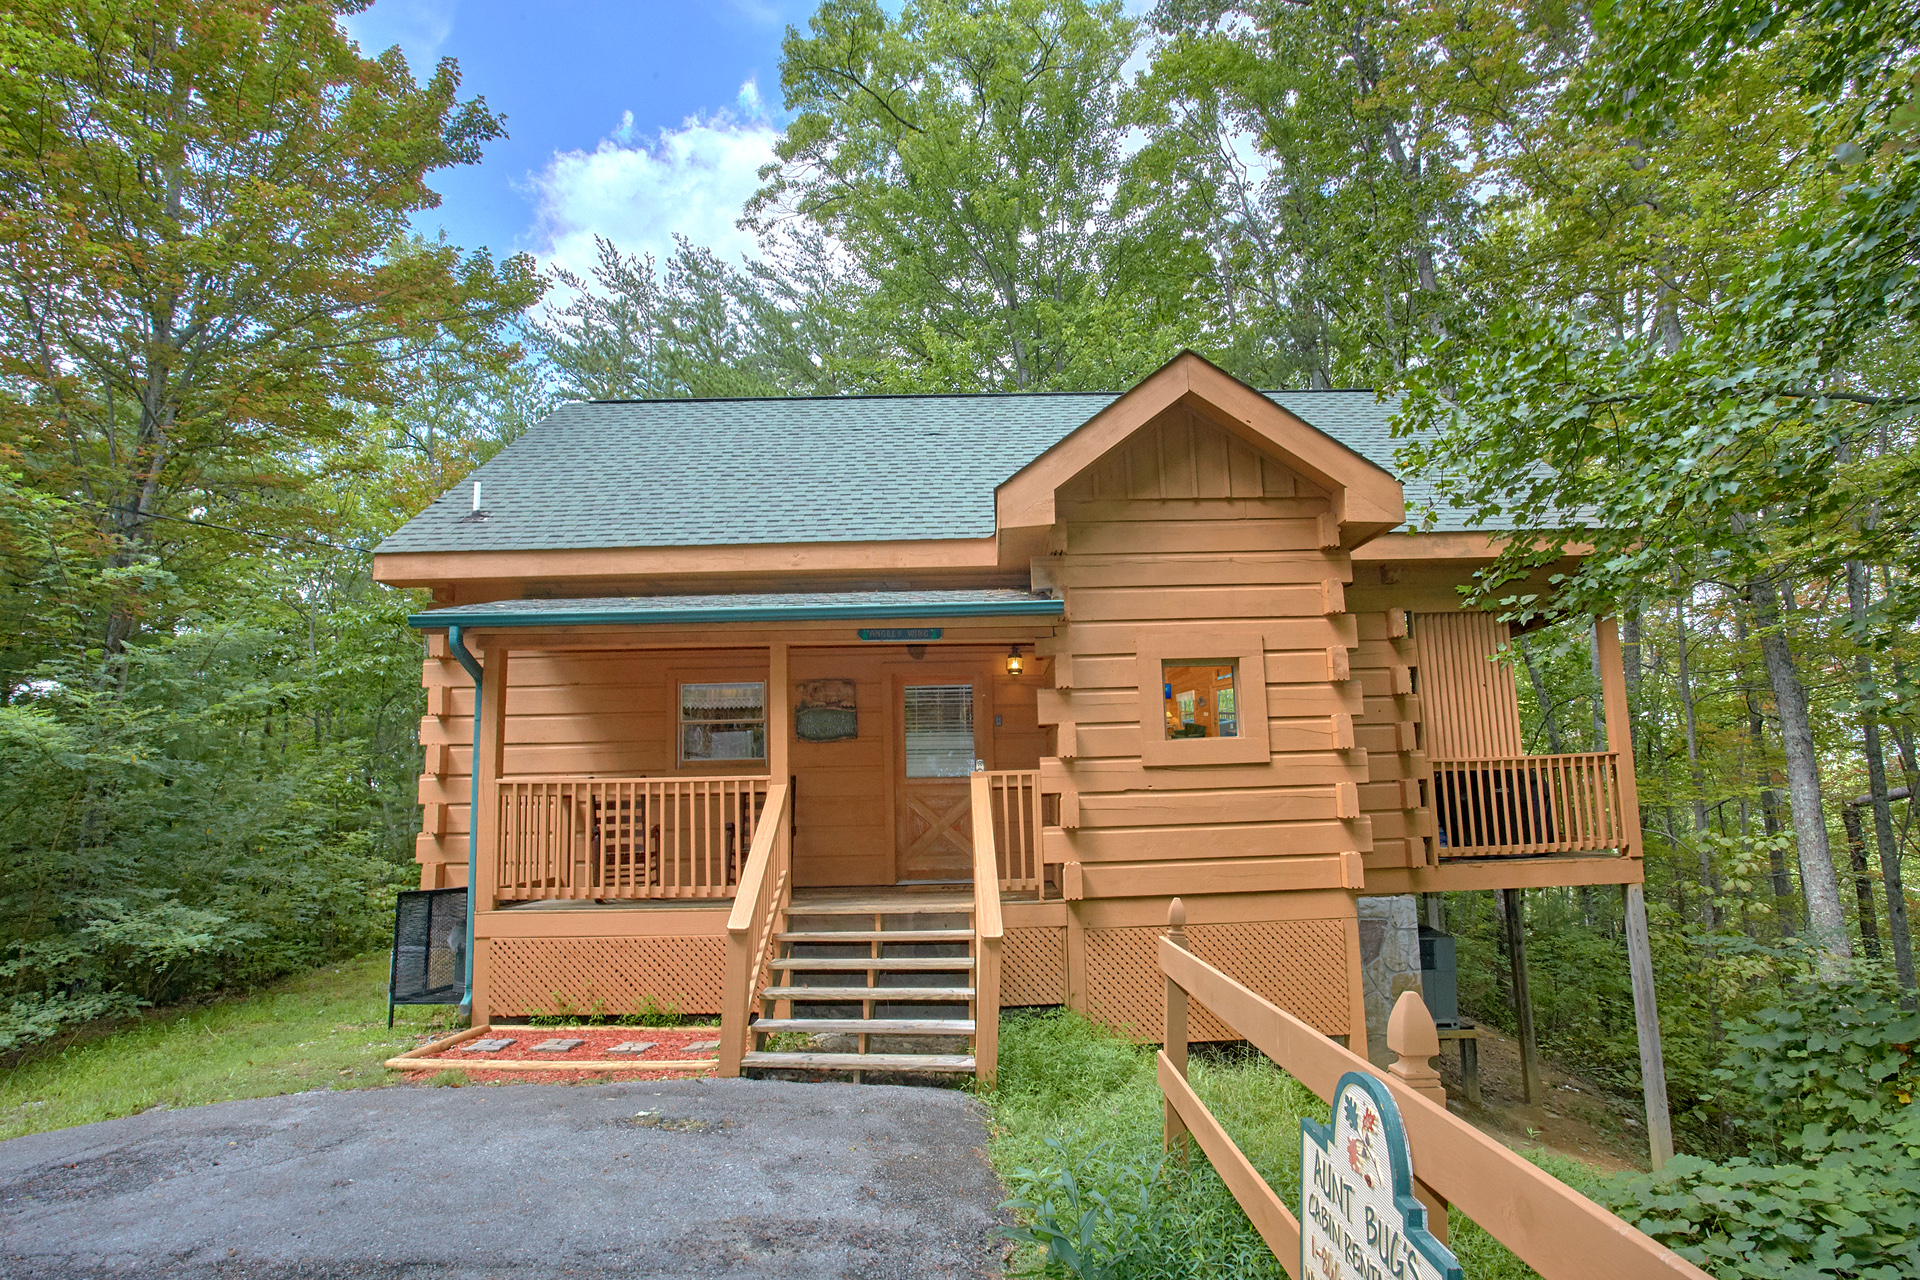 1 Bedroom Pigeon Forge Cabins | Gatlinburg Cabins | Smoky Mountain ...